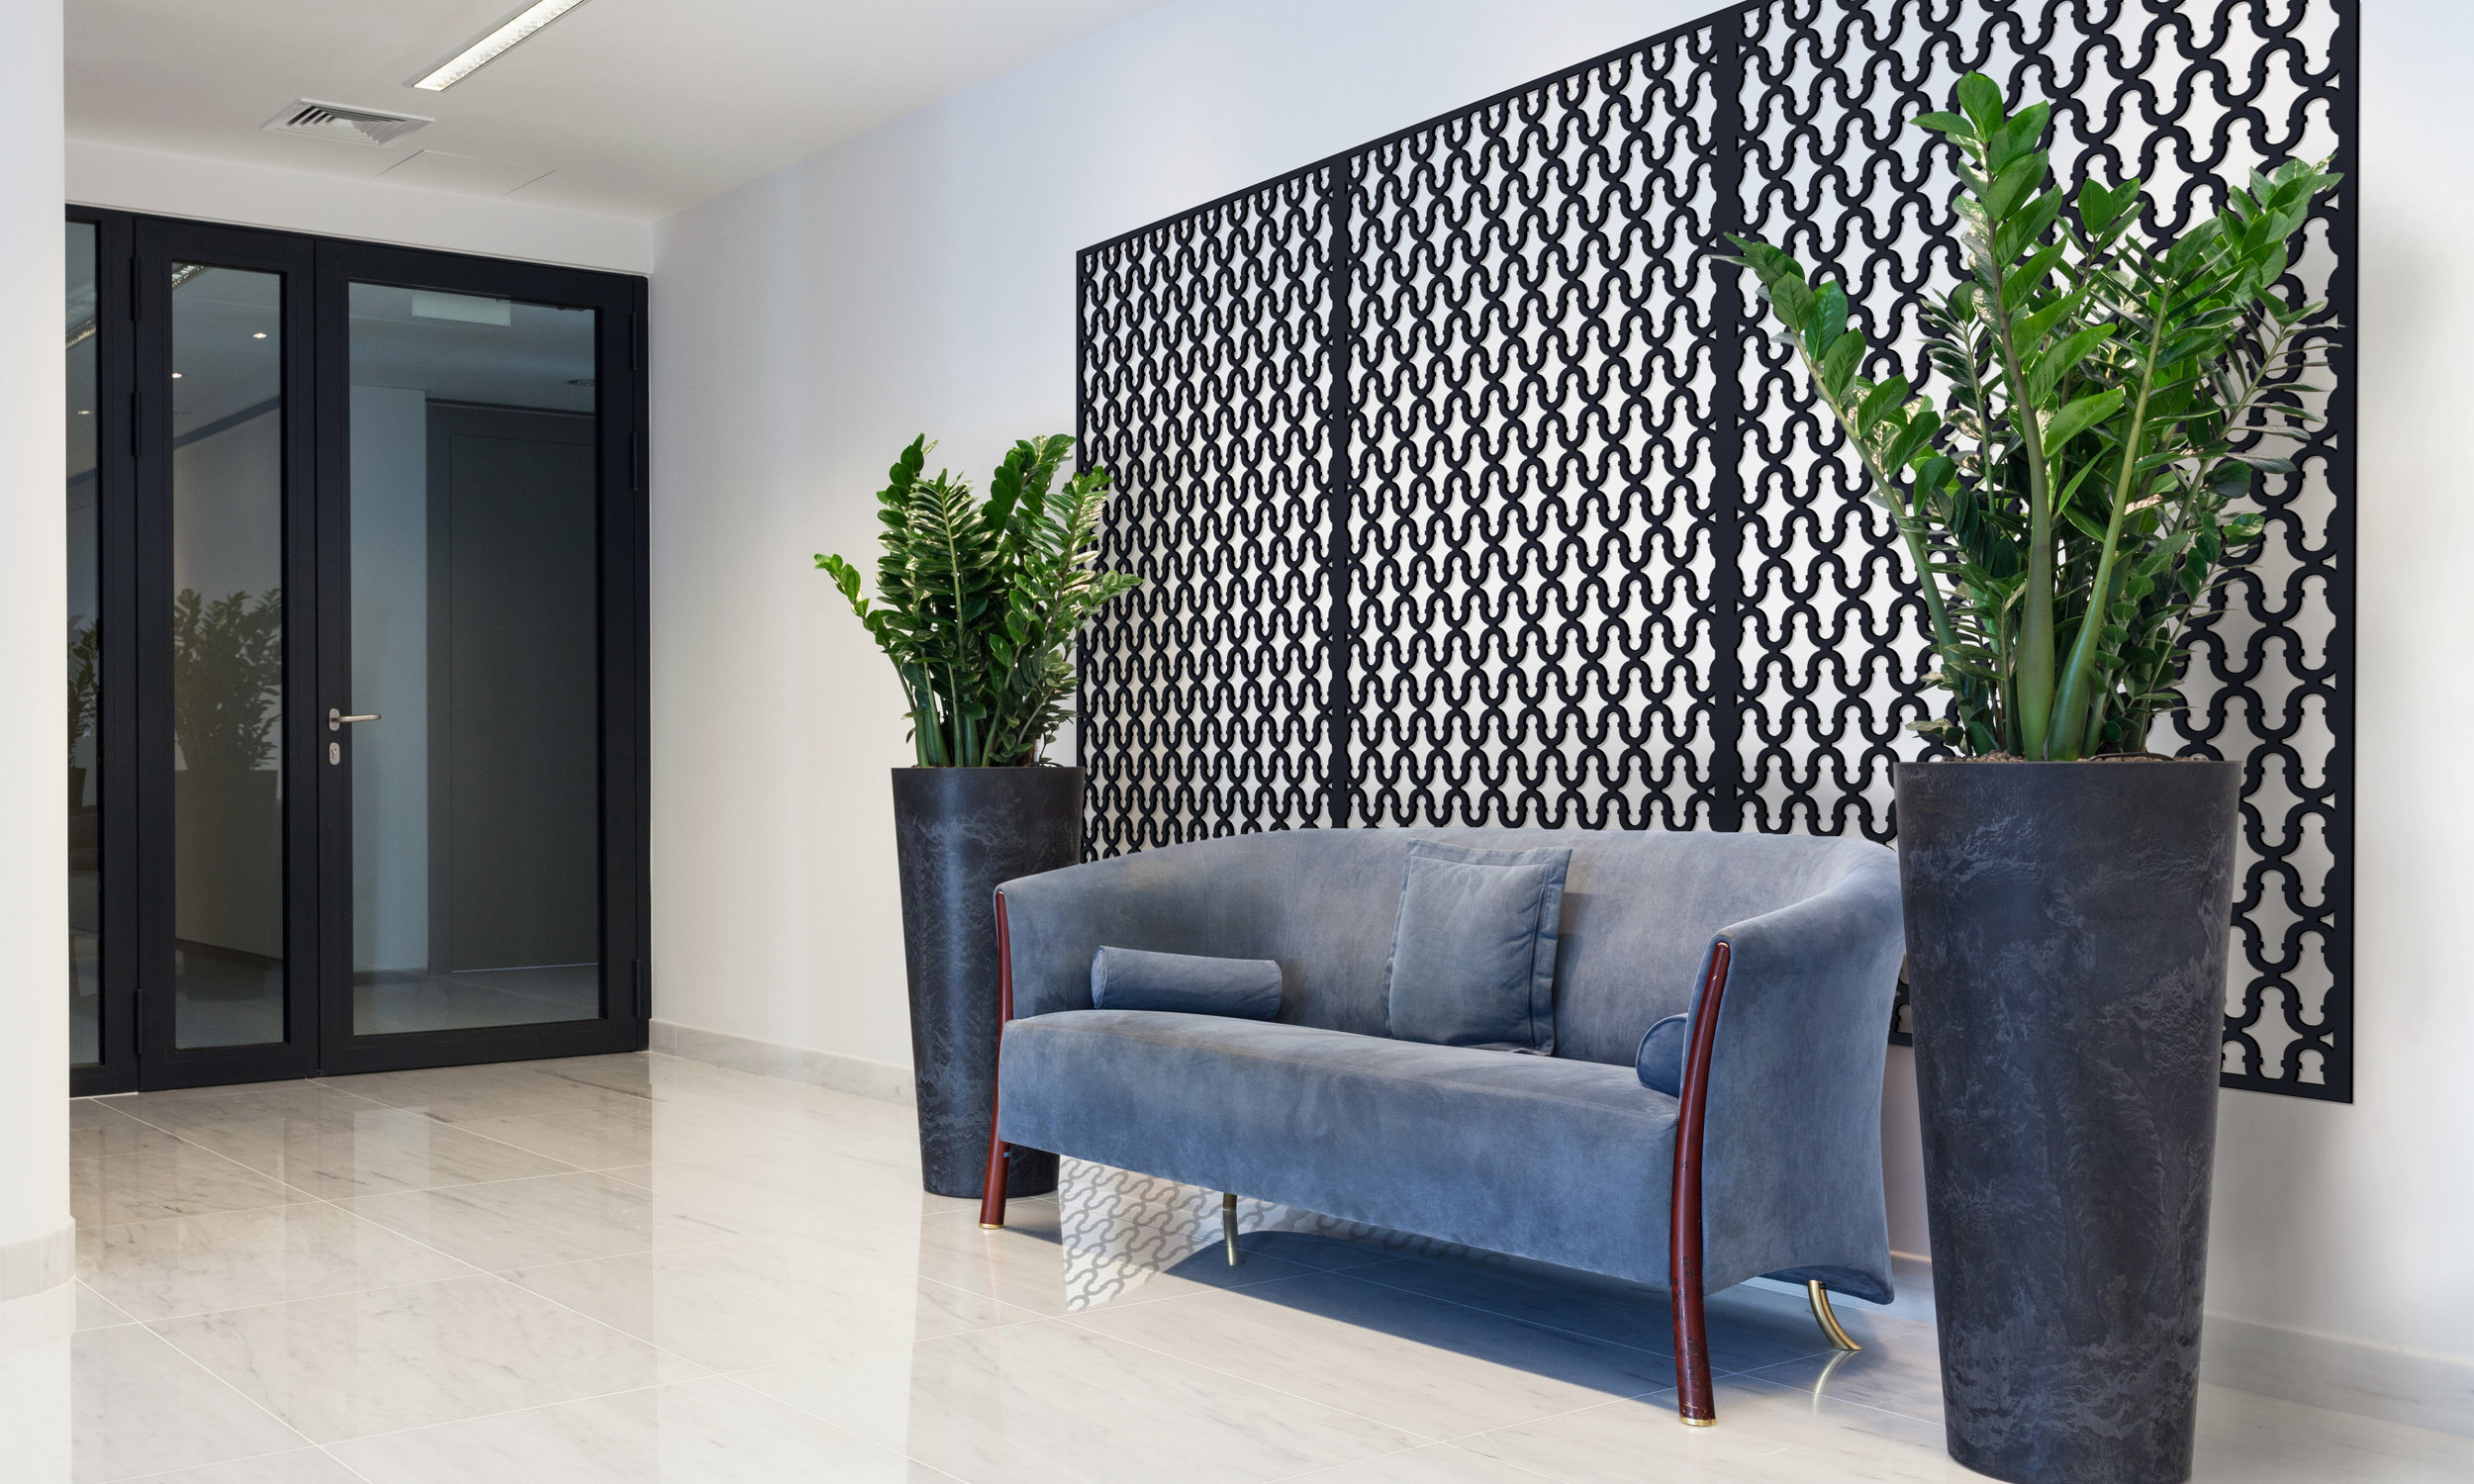 Installation Rendering A   Double Horseshoe decorative office wall panel - painted